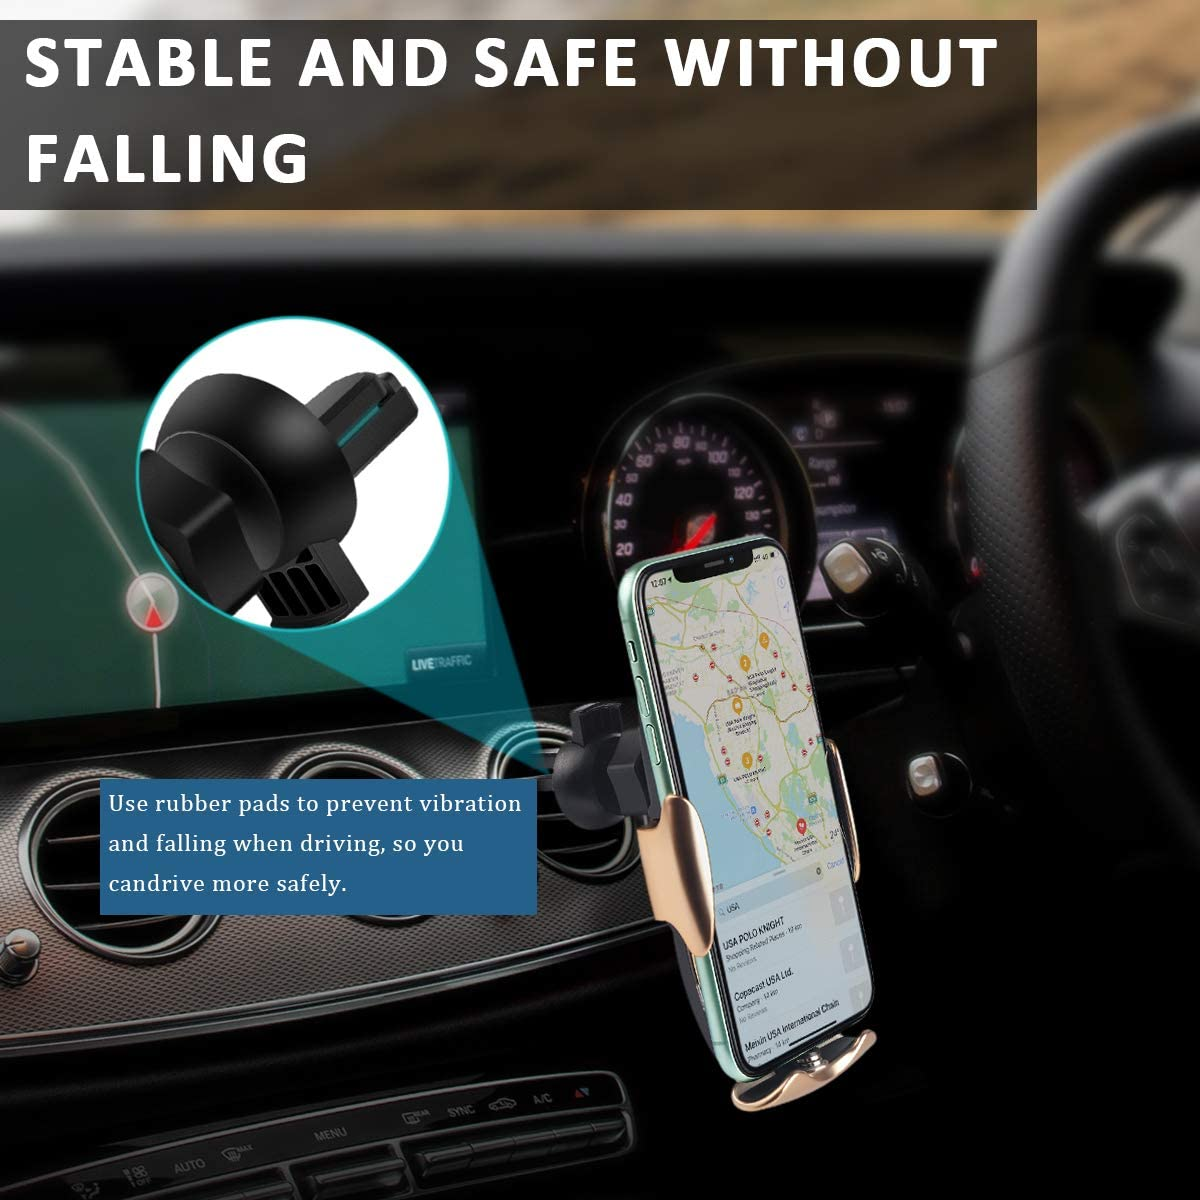 10W Fast Charging Smart Sensor Auto-Clamping Wireless Car Charger Mount for iPhone SE//11//11 Pro//11 Pro Max//XS Max Car Phone Mount Wireless Charger All Smartphone Galaxy S20//S20 Plus//Note10